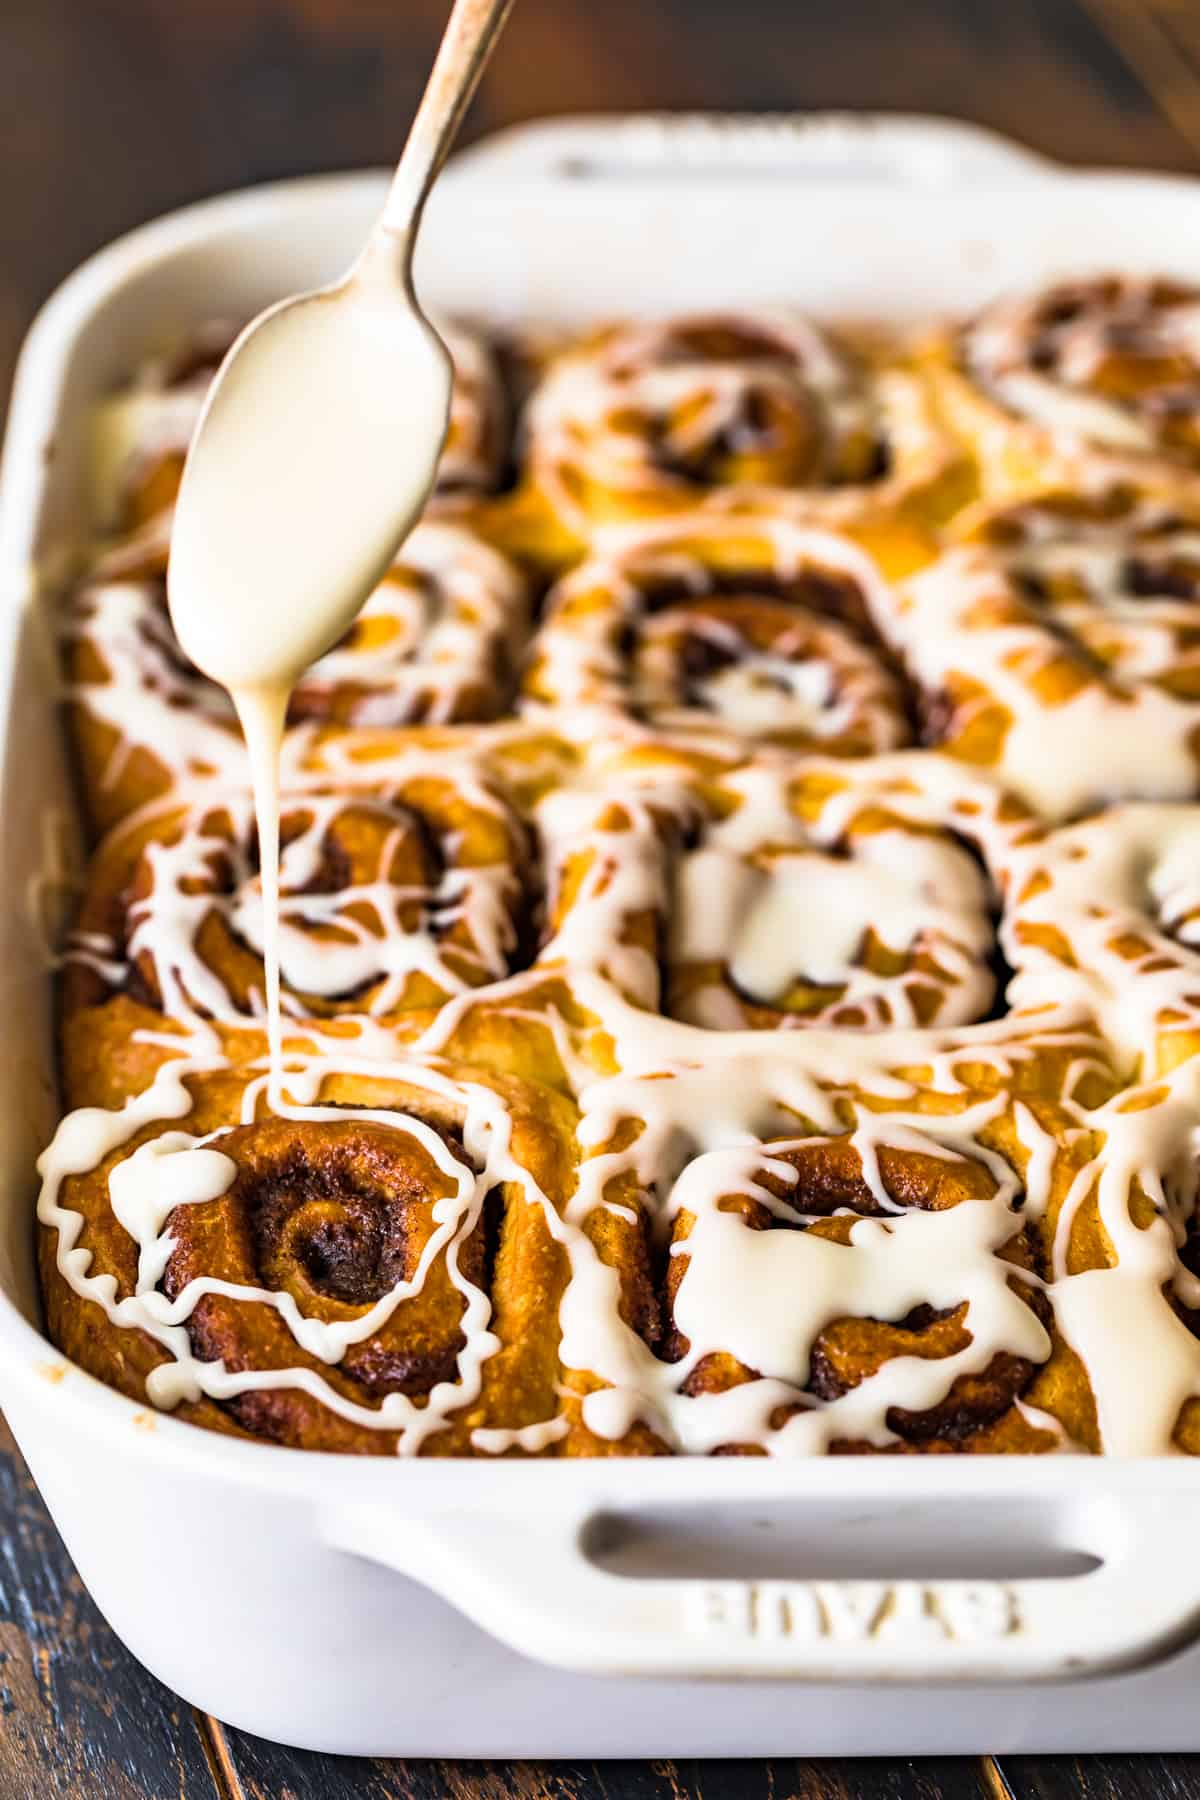 Icing on a spoon being drizzled over the rolls